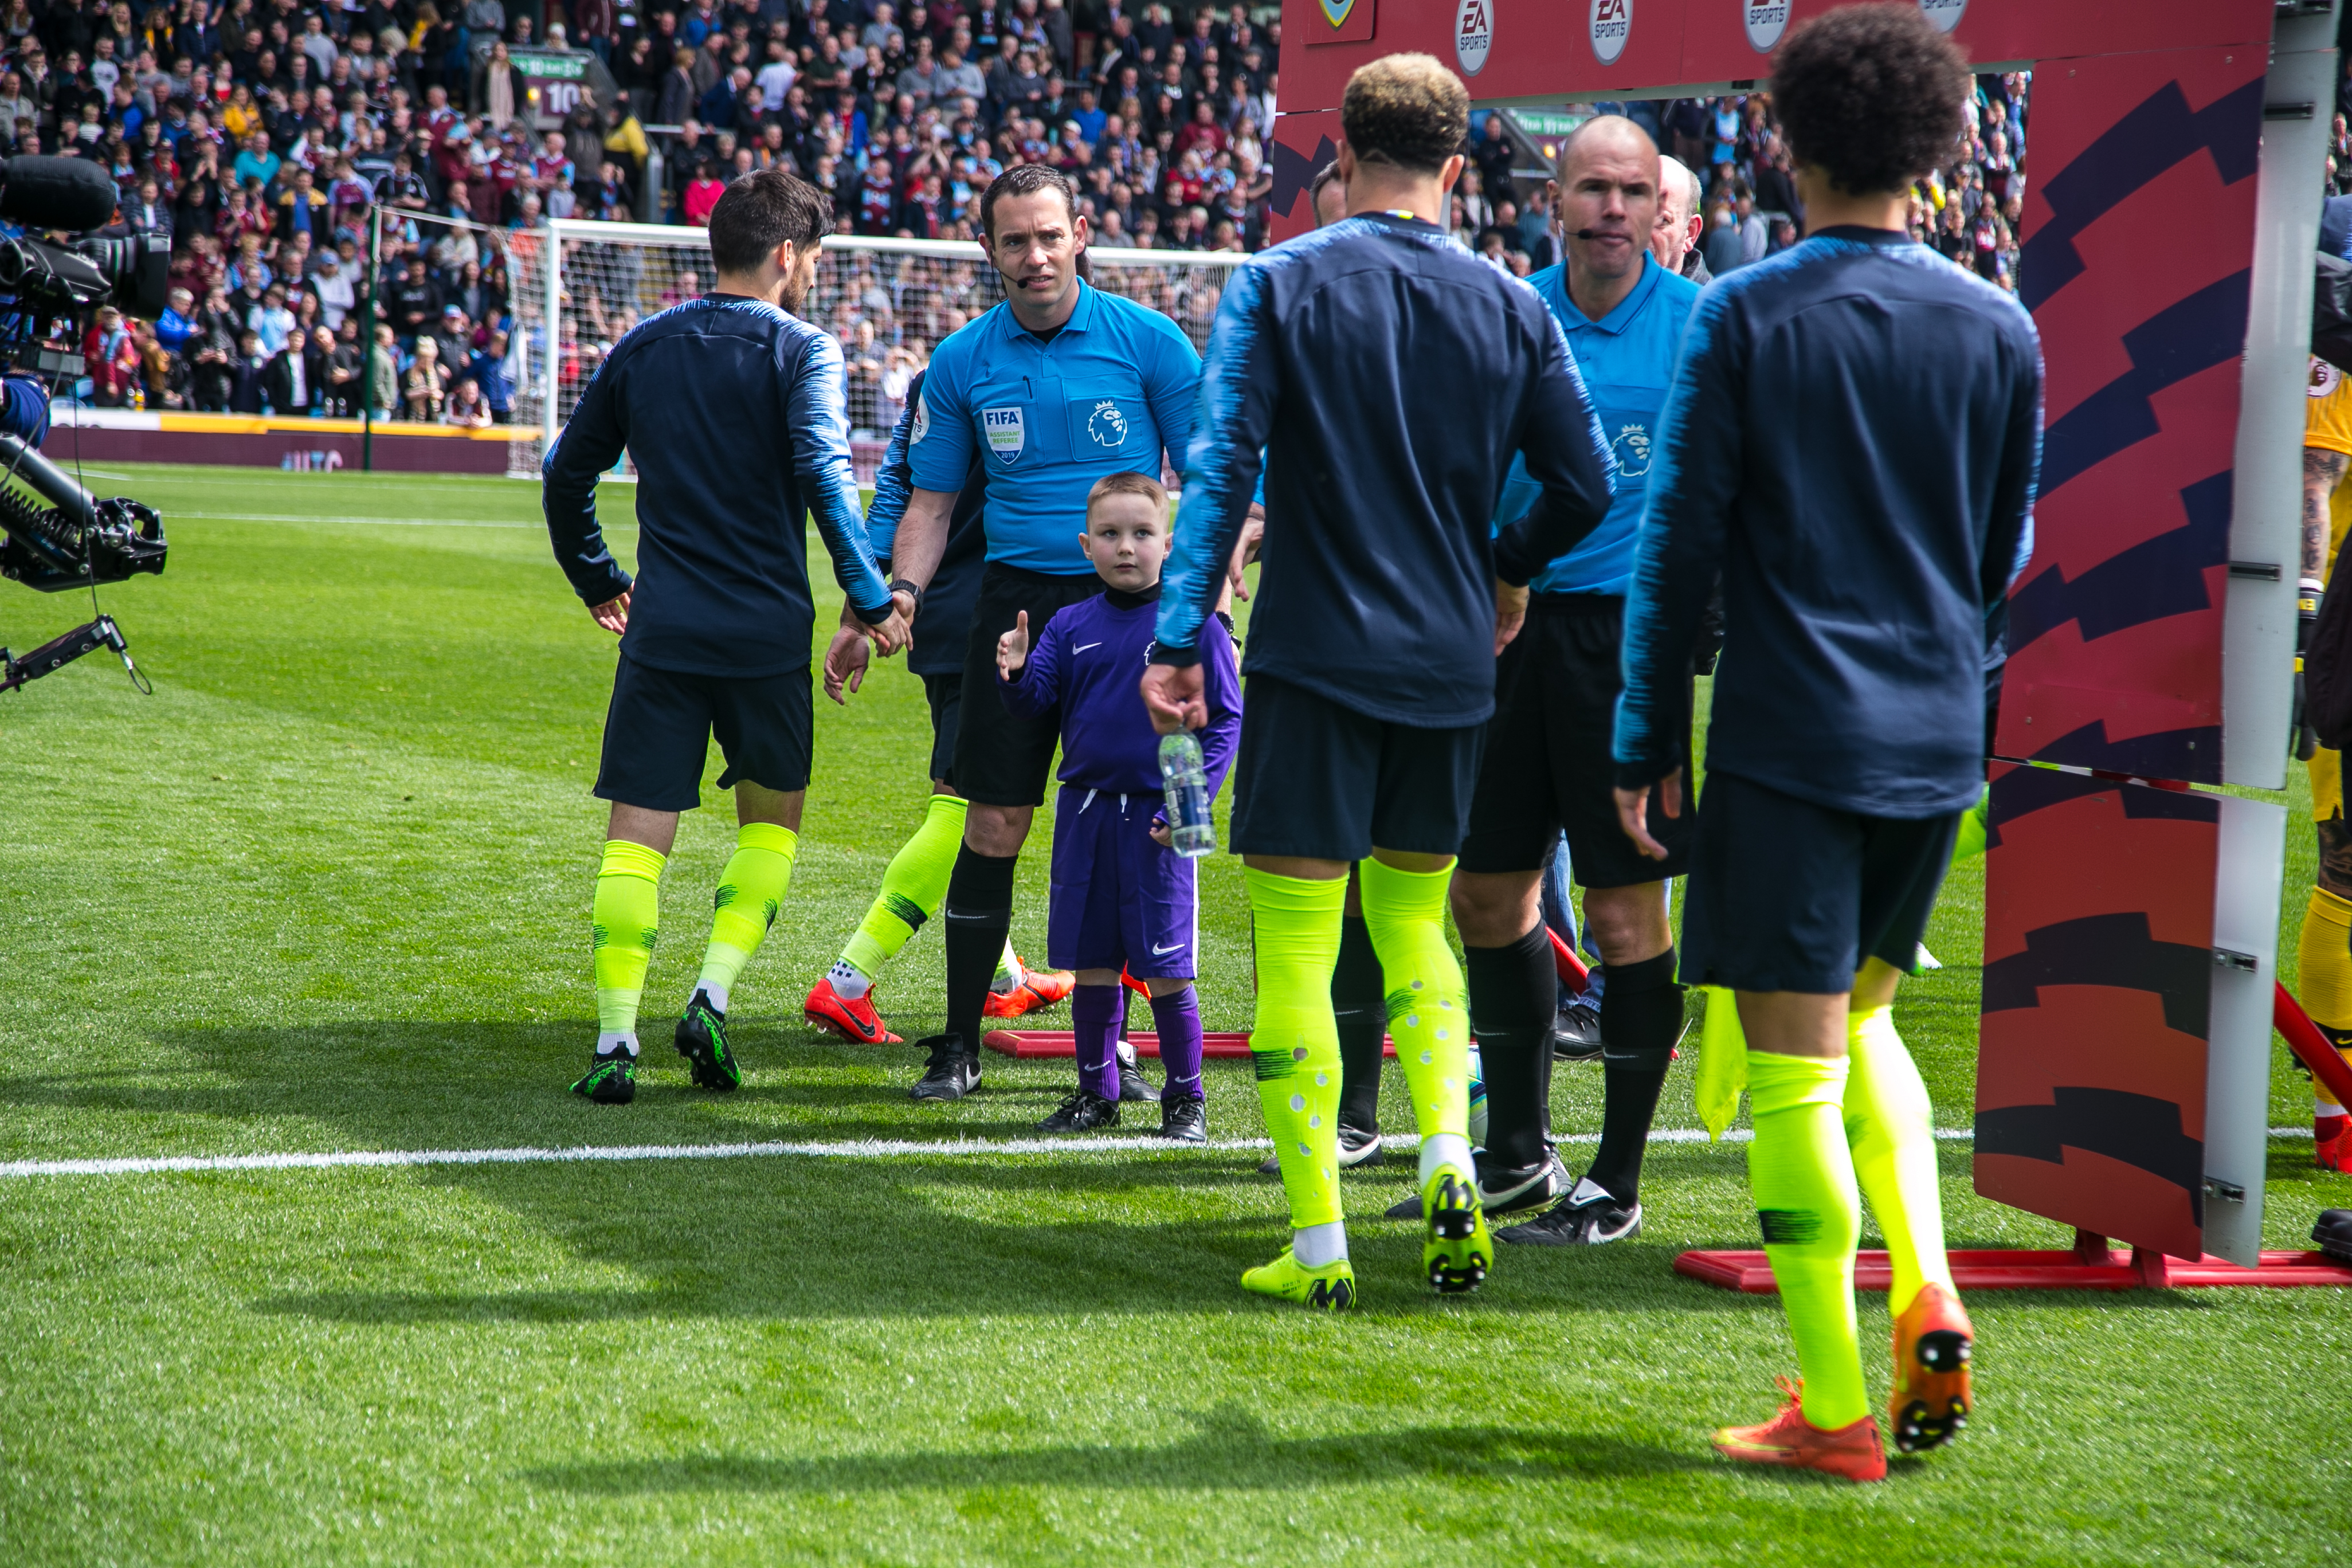 Primary Star Lucas enjoys memorable matchday as Referee ...